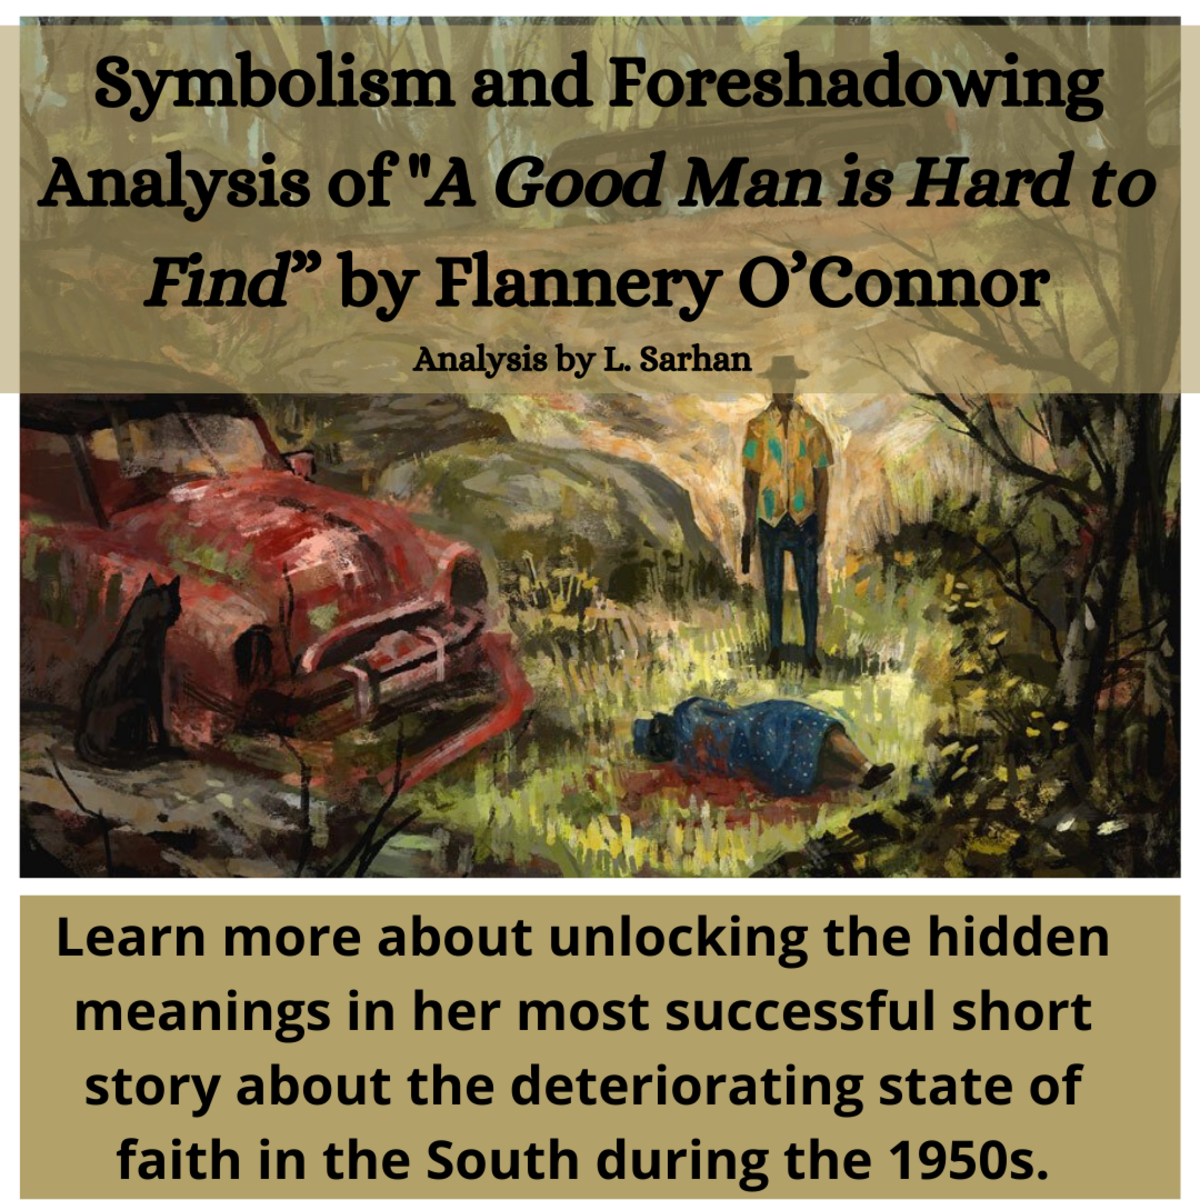 """Symbolism and Foreshadowing Analysis of """"A Good Man is Hard to Find"""" by Flannery O'Connor"""